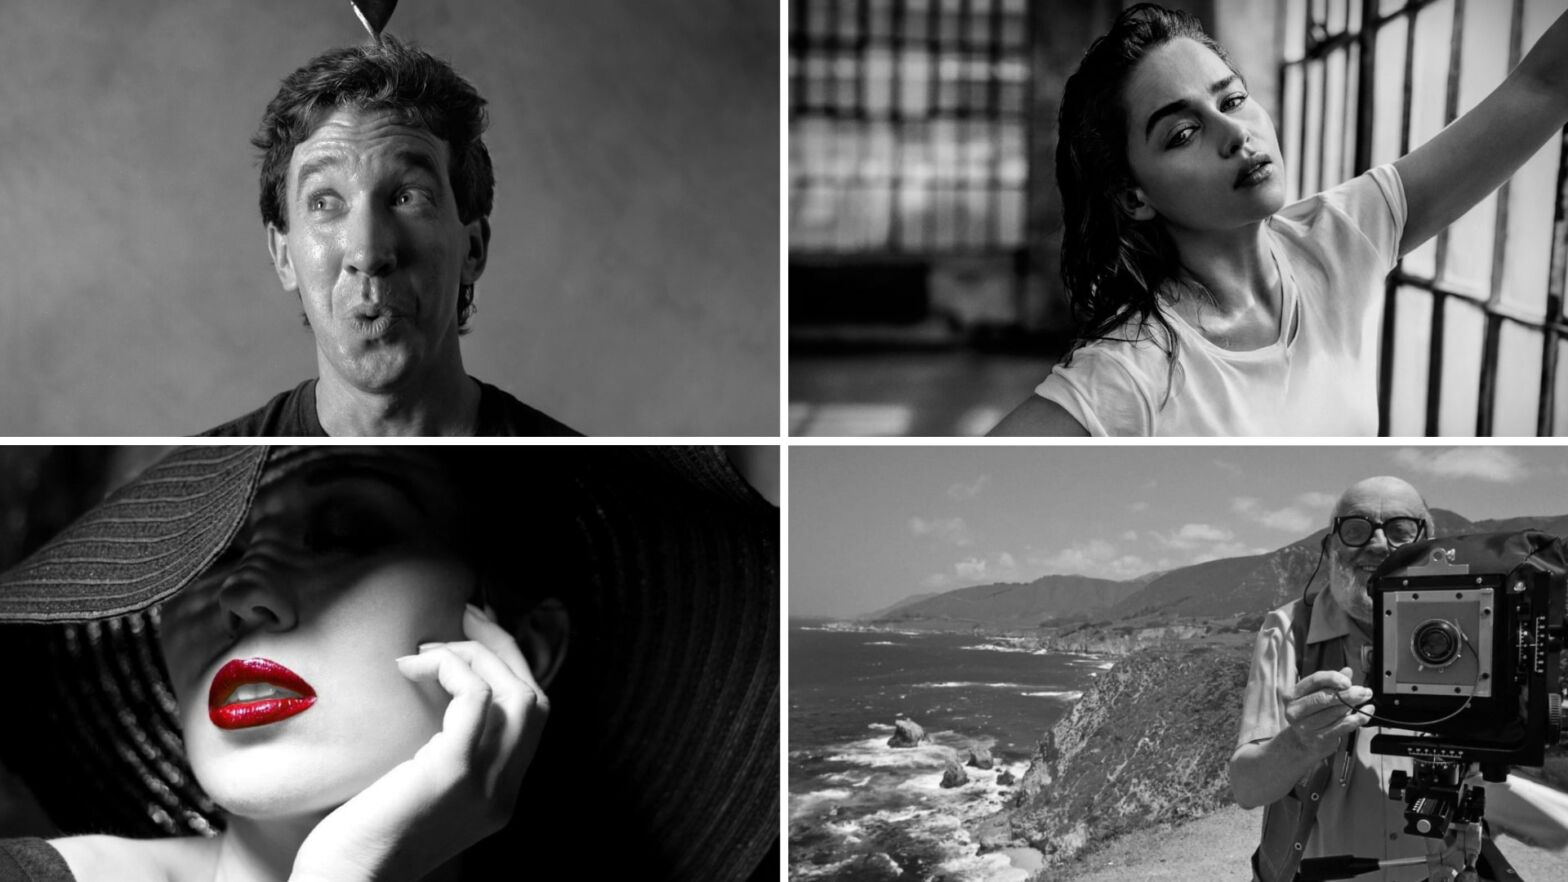 Black and White Portrait Photography — Pro-Tips - Techniques - Featured